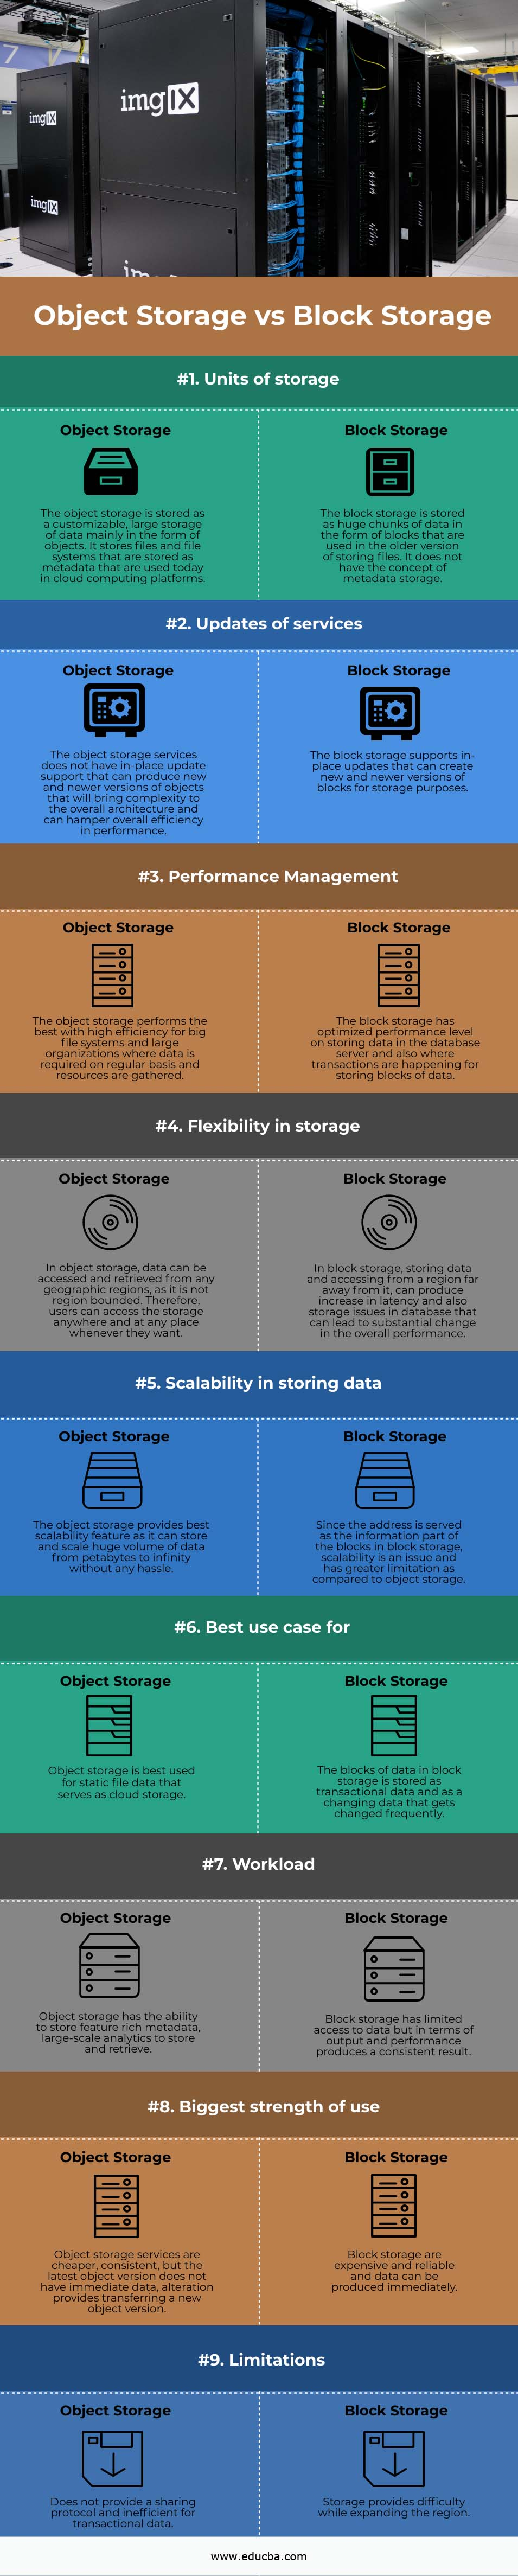 Object Storage vs Block Storage info